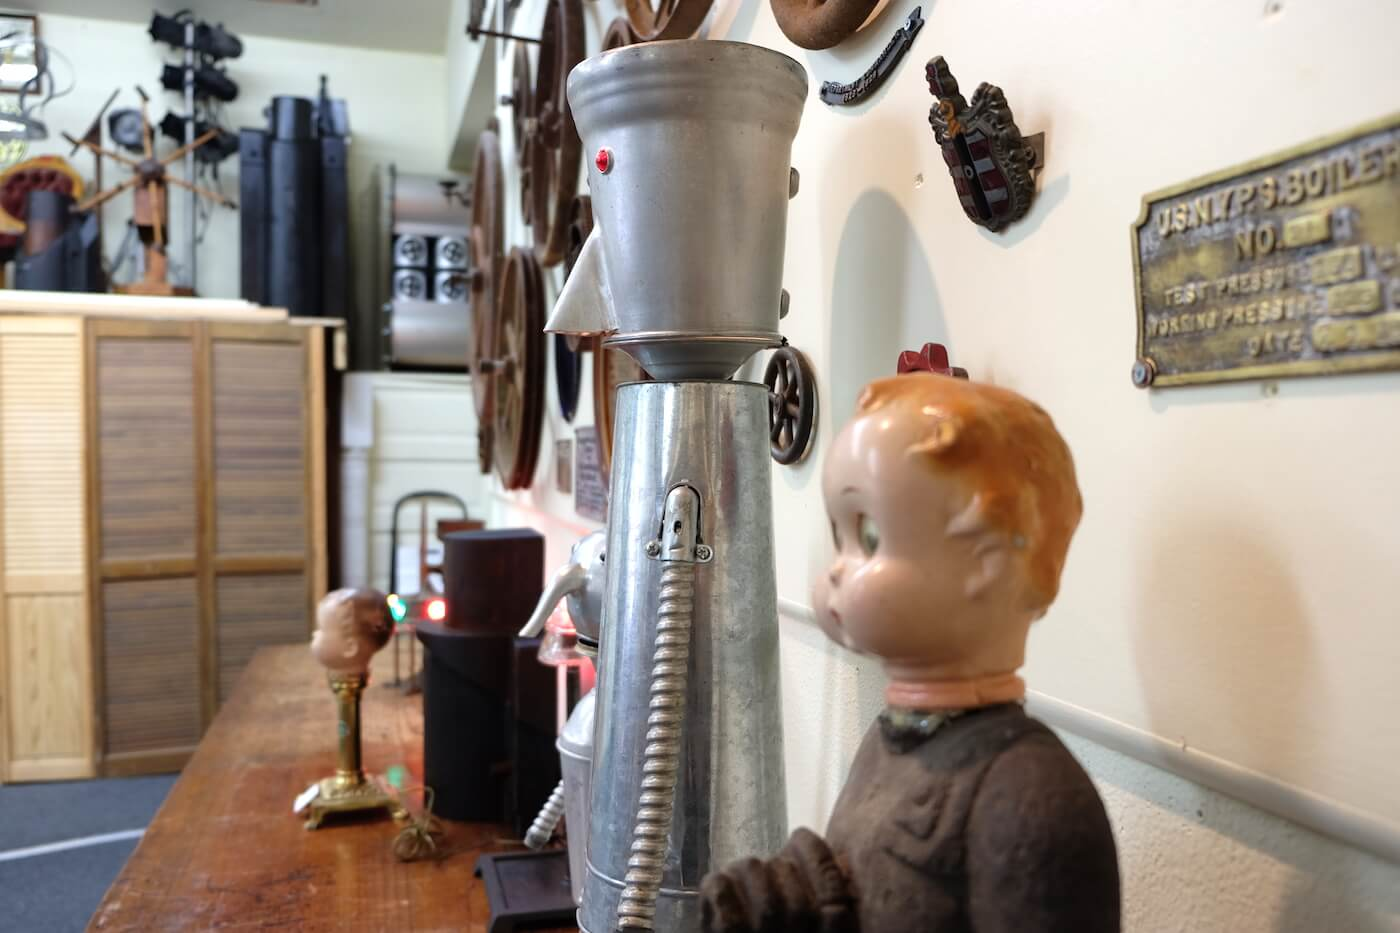 Doll Head Steampunk Art at Spencer's Ferndale Vintage in the Victorian Village.jpeg